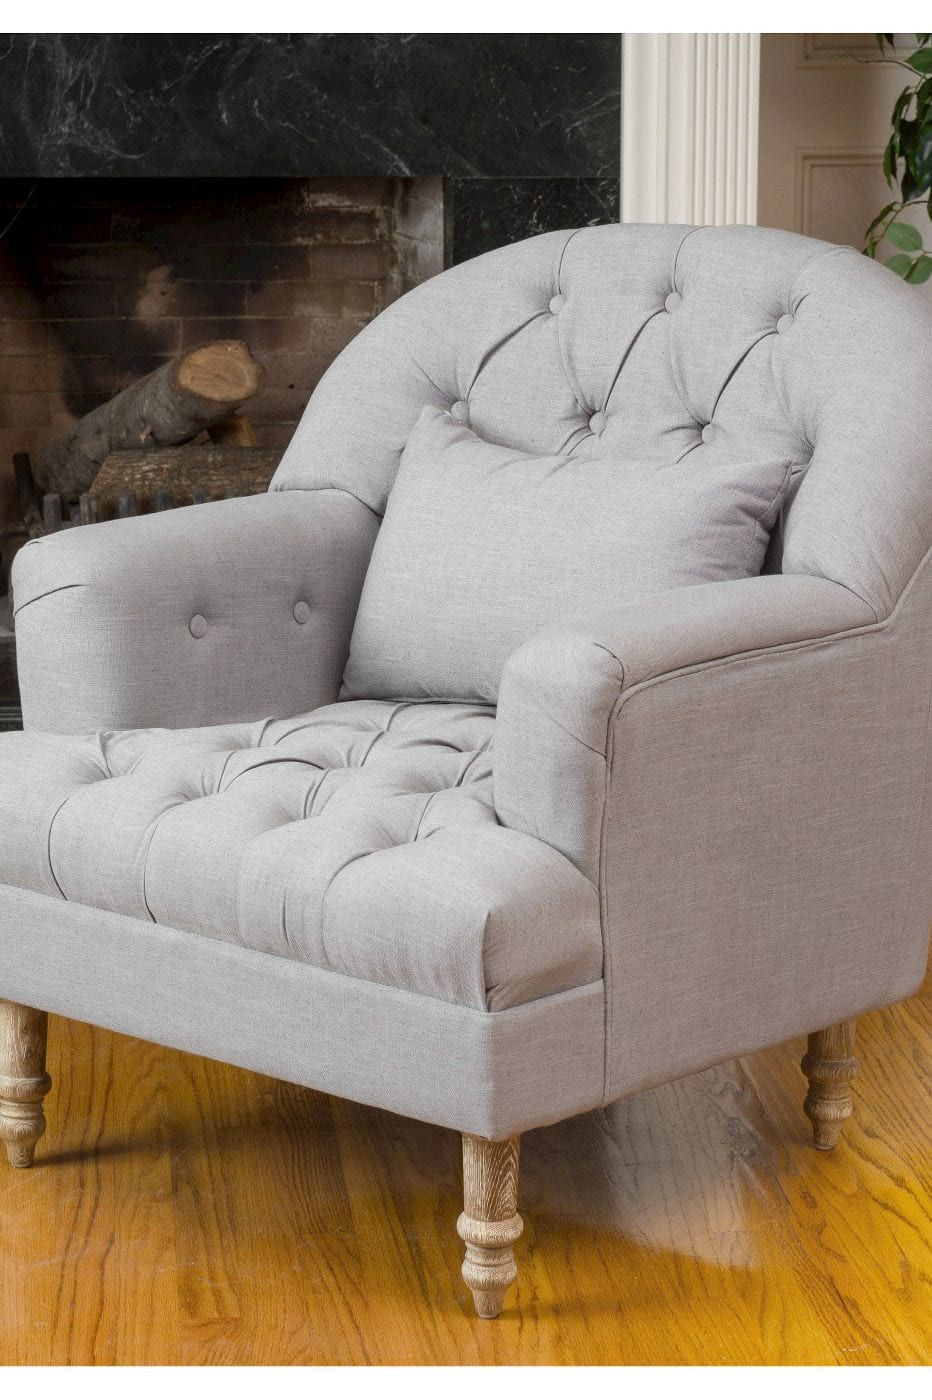 Tufted Armchair for living room